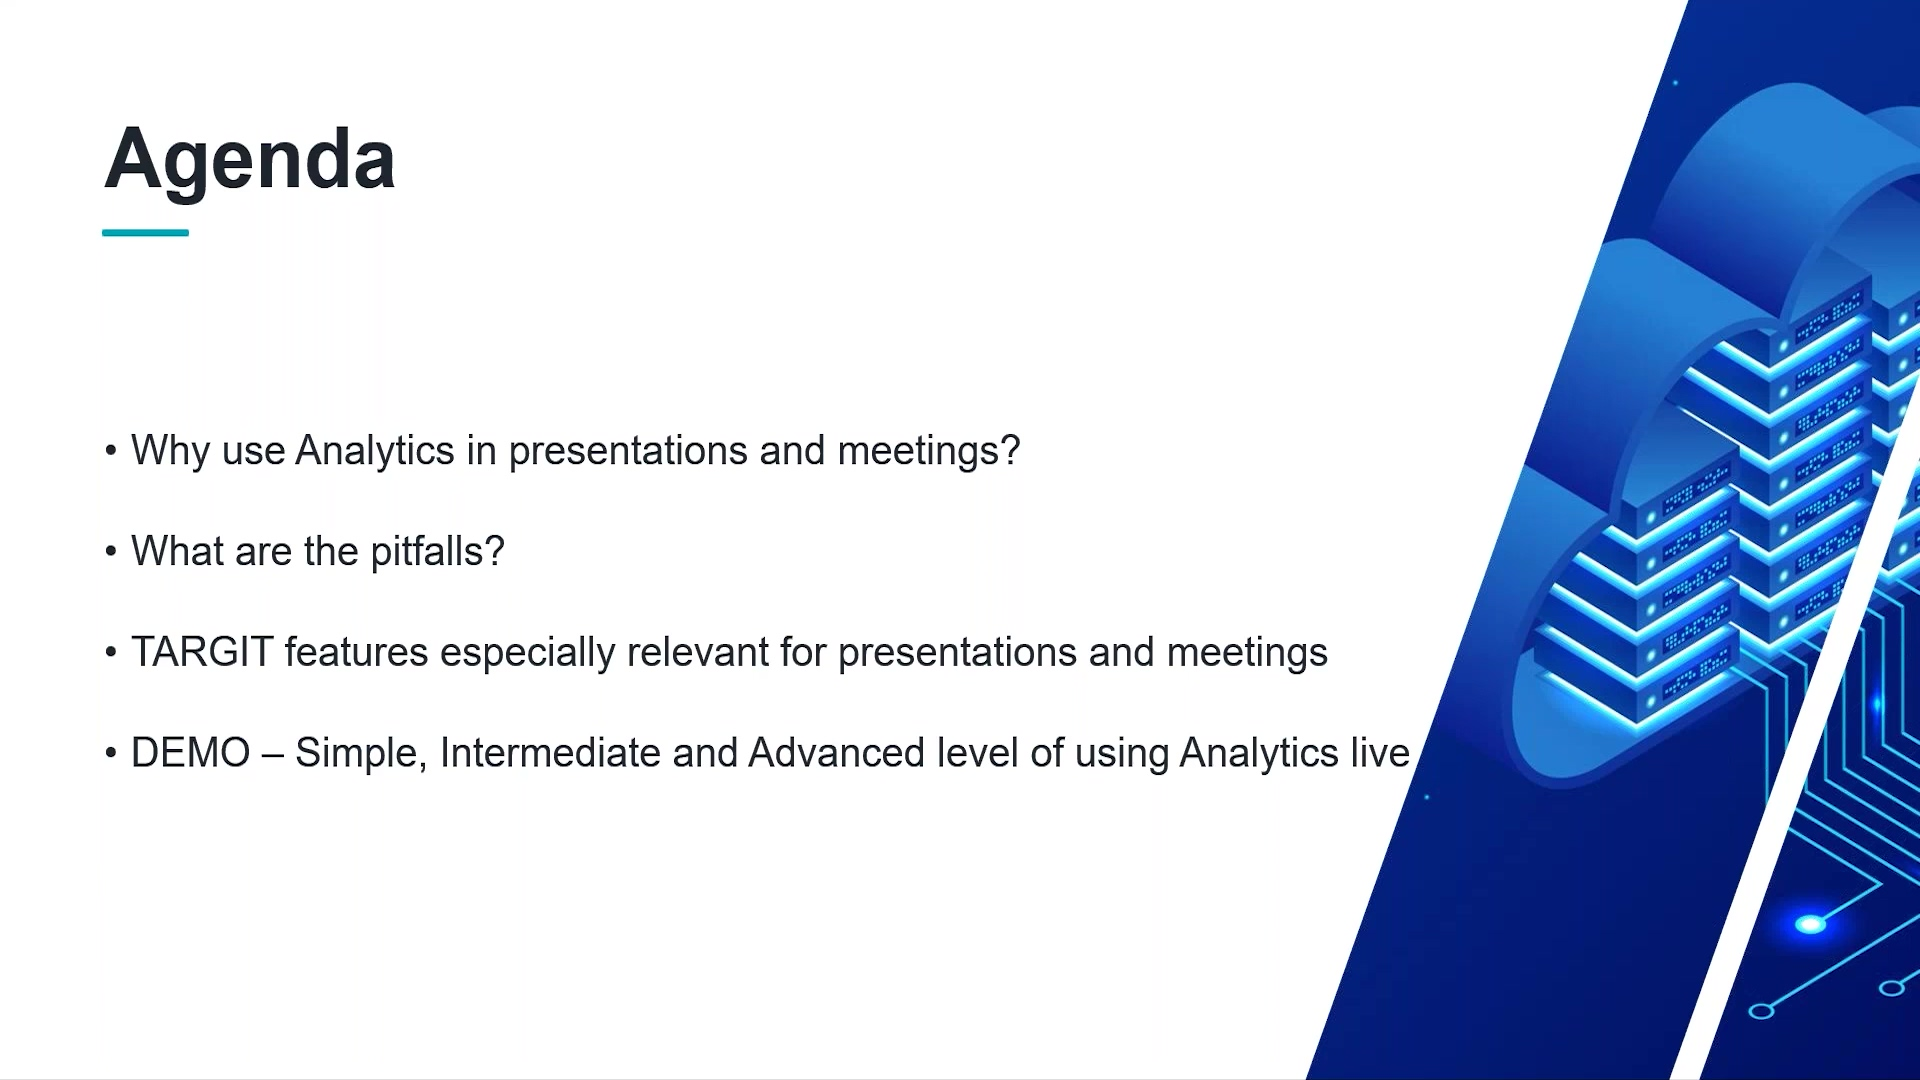 Make Presentations and Meetings More Effective with Analytics